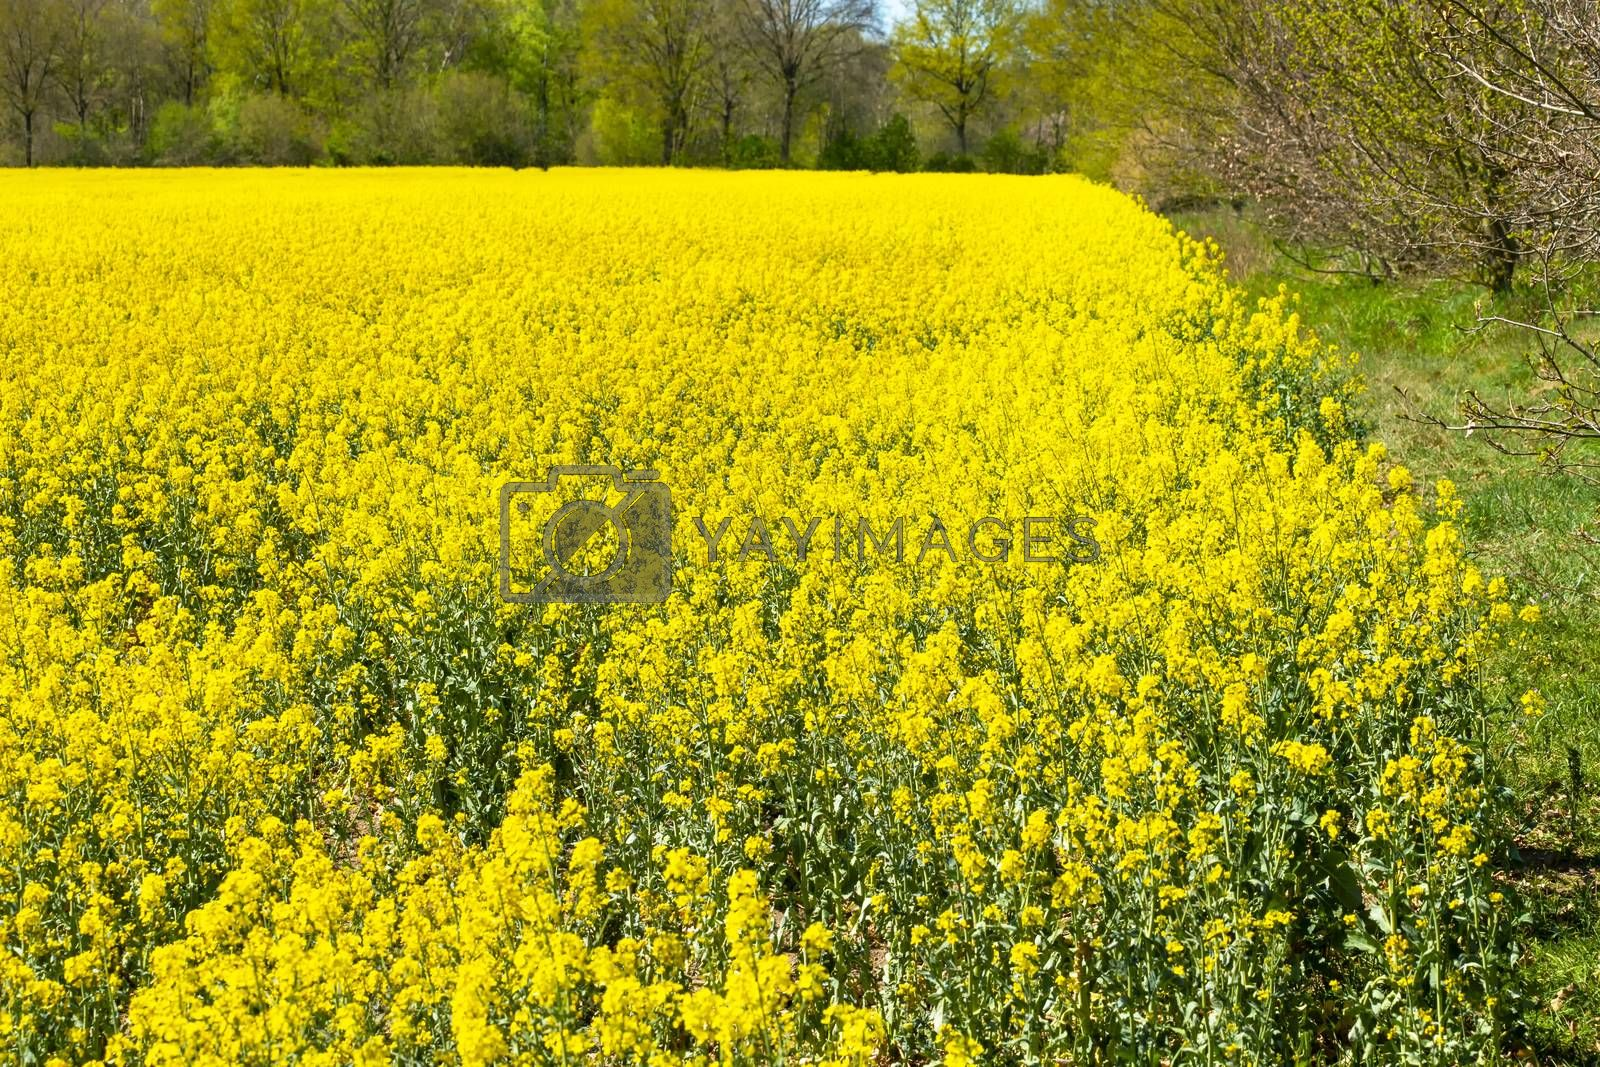 Royalty free image of Yellow blooming rape field in spring by Fr@nk